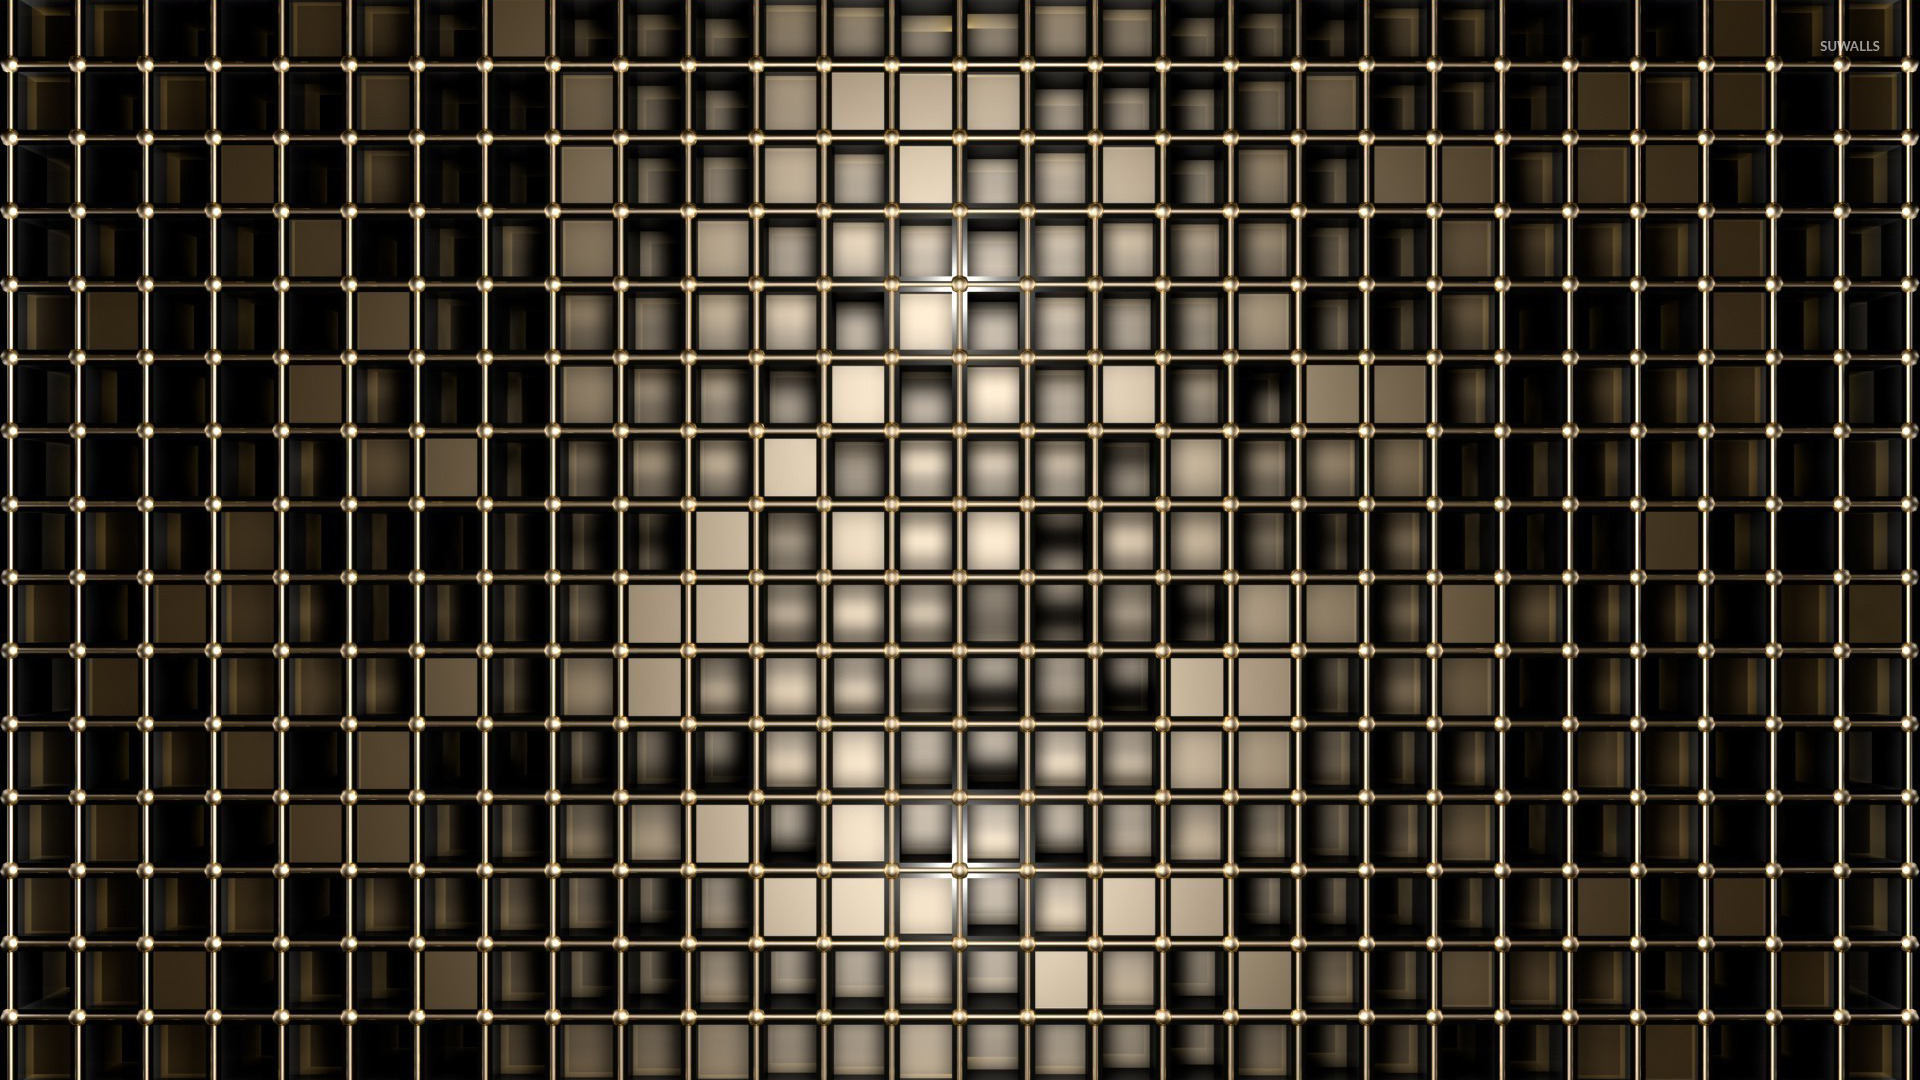 Bronze Wallpaper Squares Wallpapersafari